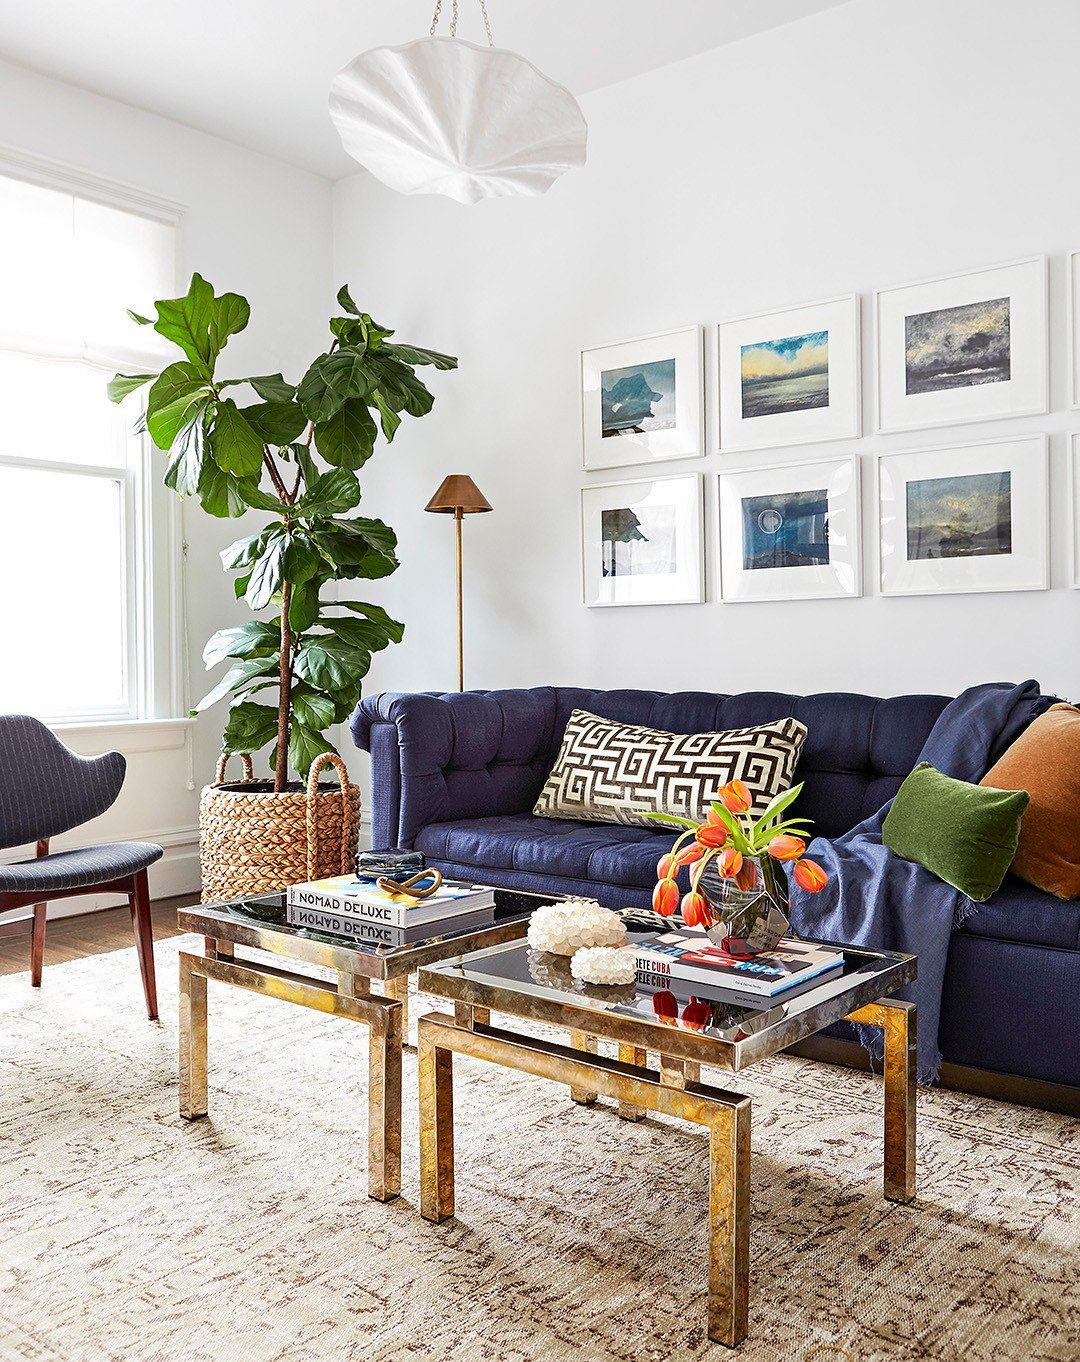 24 beautiful home decor for small spaces small apartment on stunning minimalist apartment décor ideas home decor for your small apartment id=32557